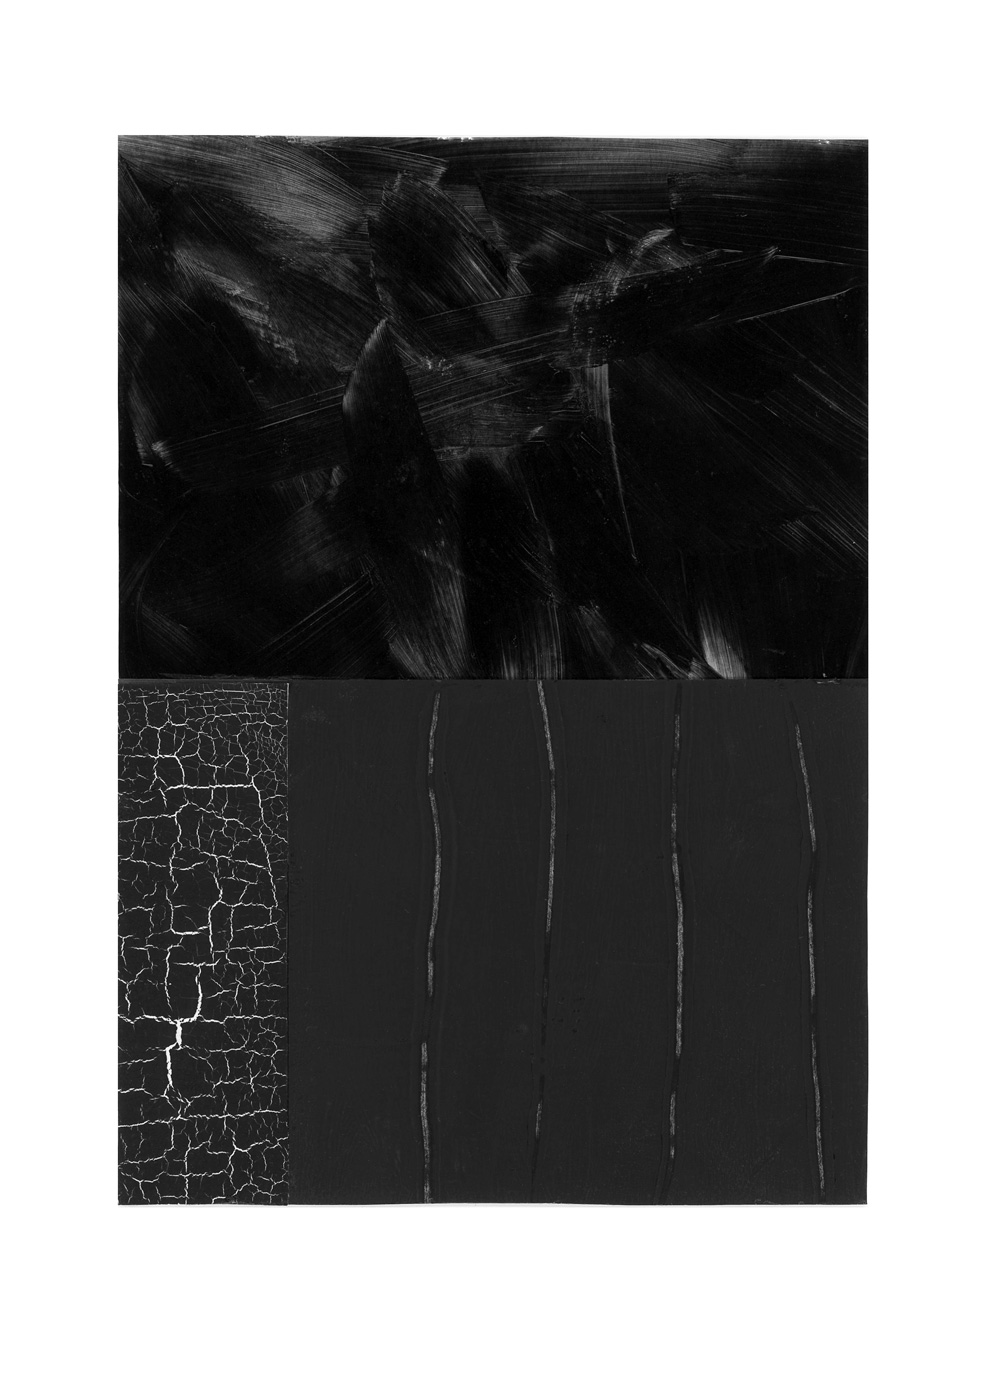 inspired by pierre soulages, no. 2